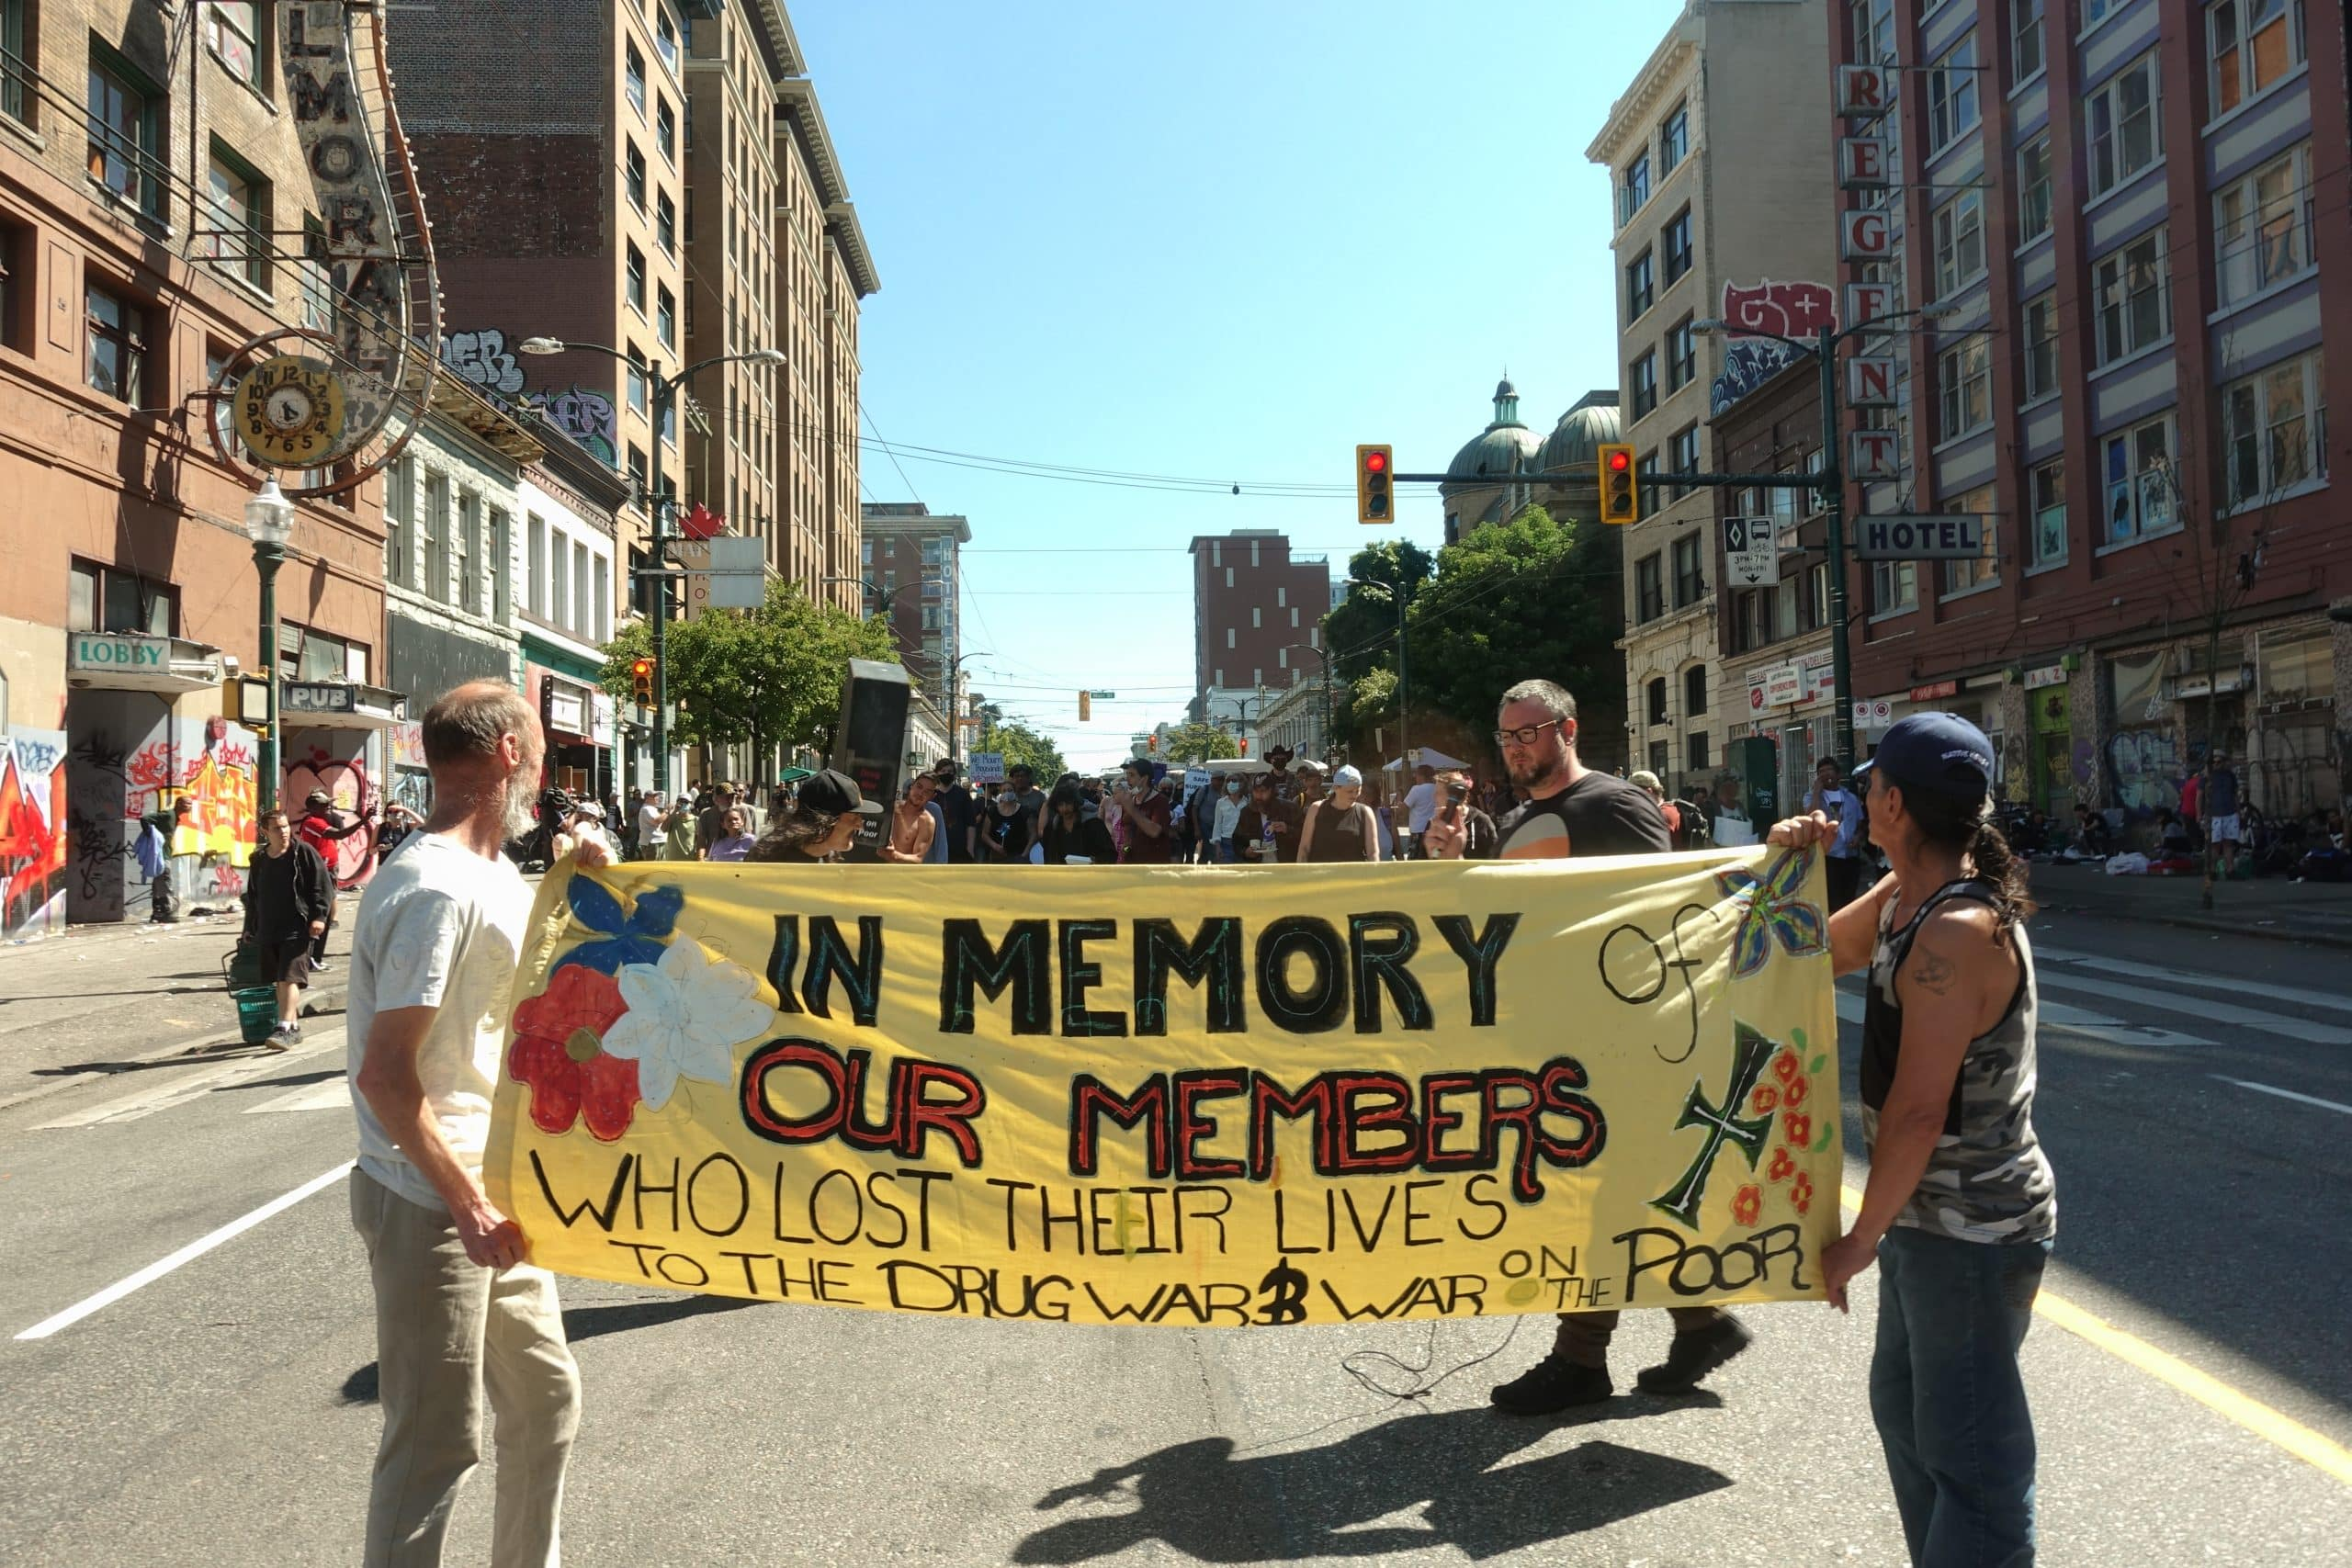 """Two people carry a large banner down the street that reads """"In Memory Our Members"""""""